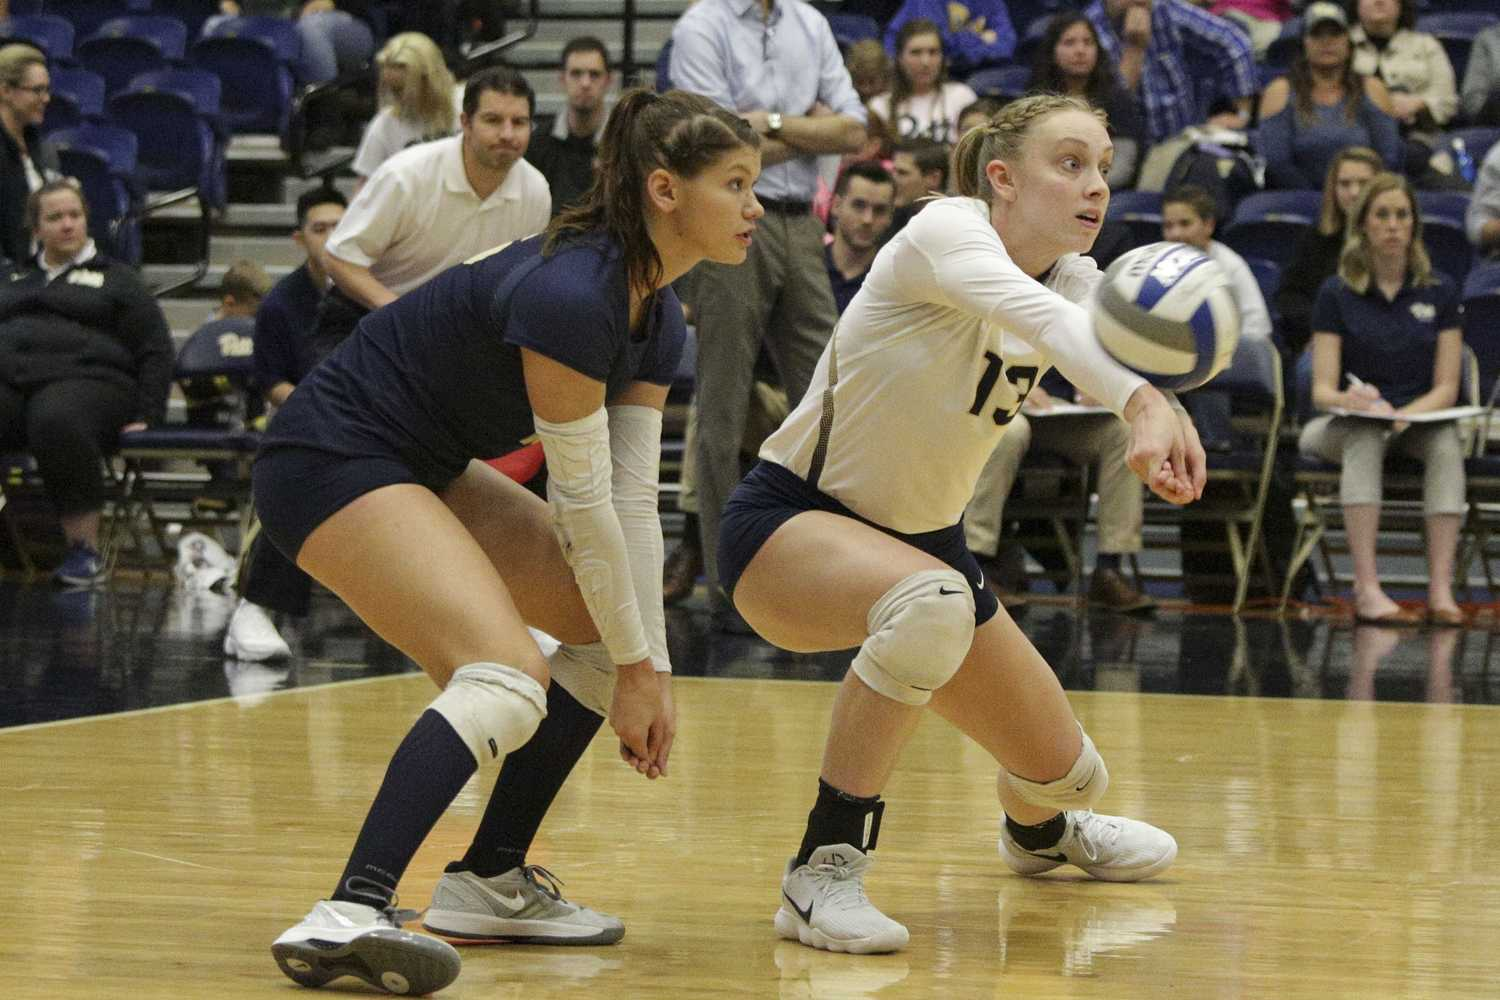 Pitt volleyball lost to No. 1 Penn State in the second round of the NCAA Tournament Saturday. (Photo by Thomas Yang / Senior Staff Photographer)